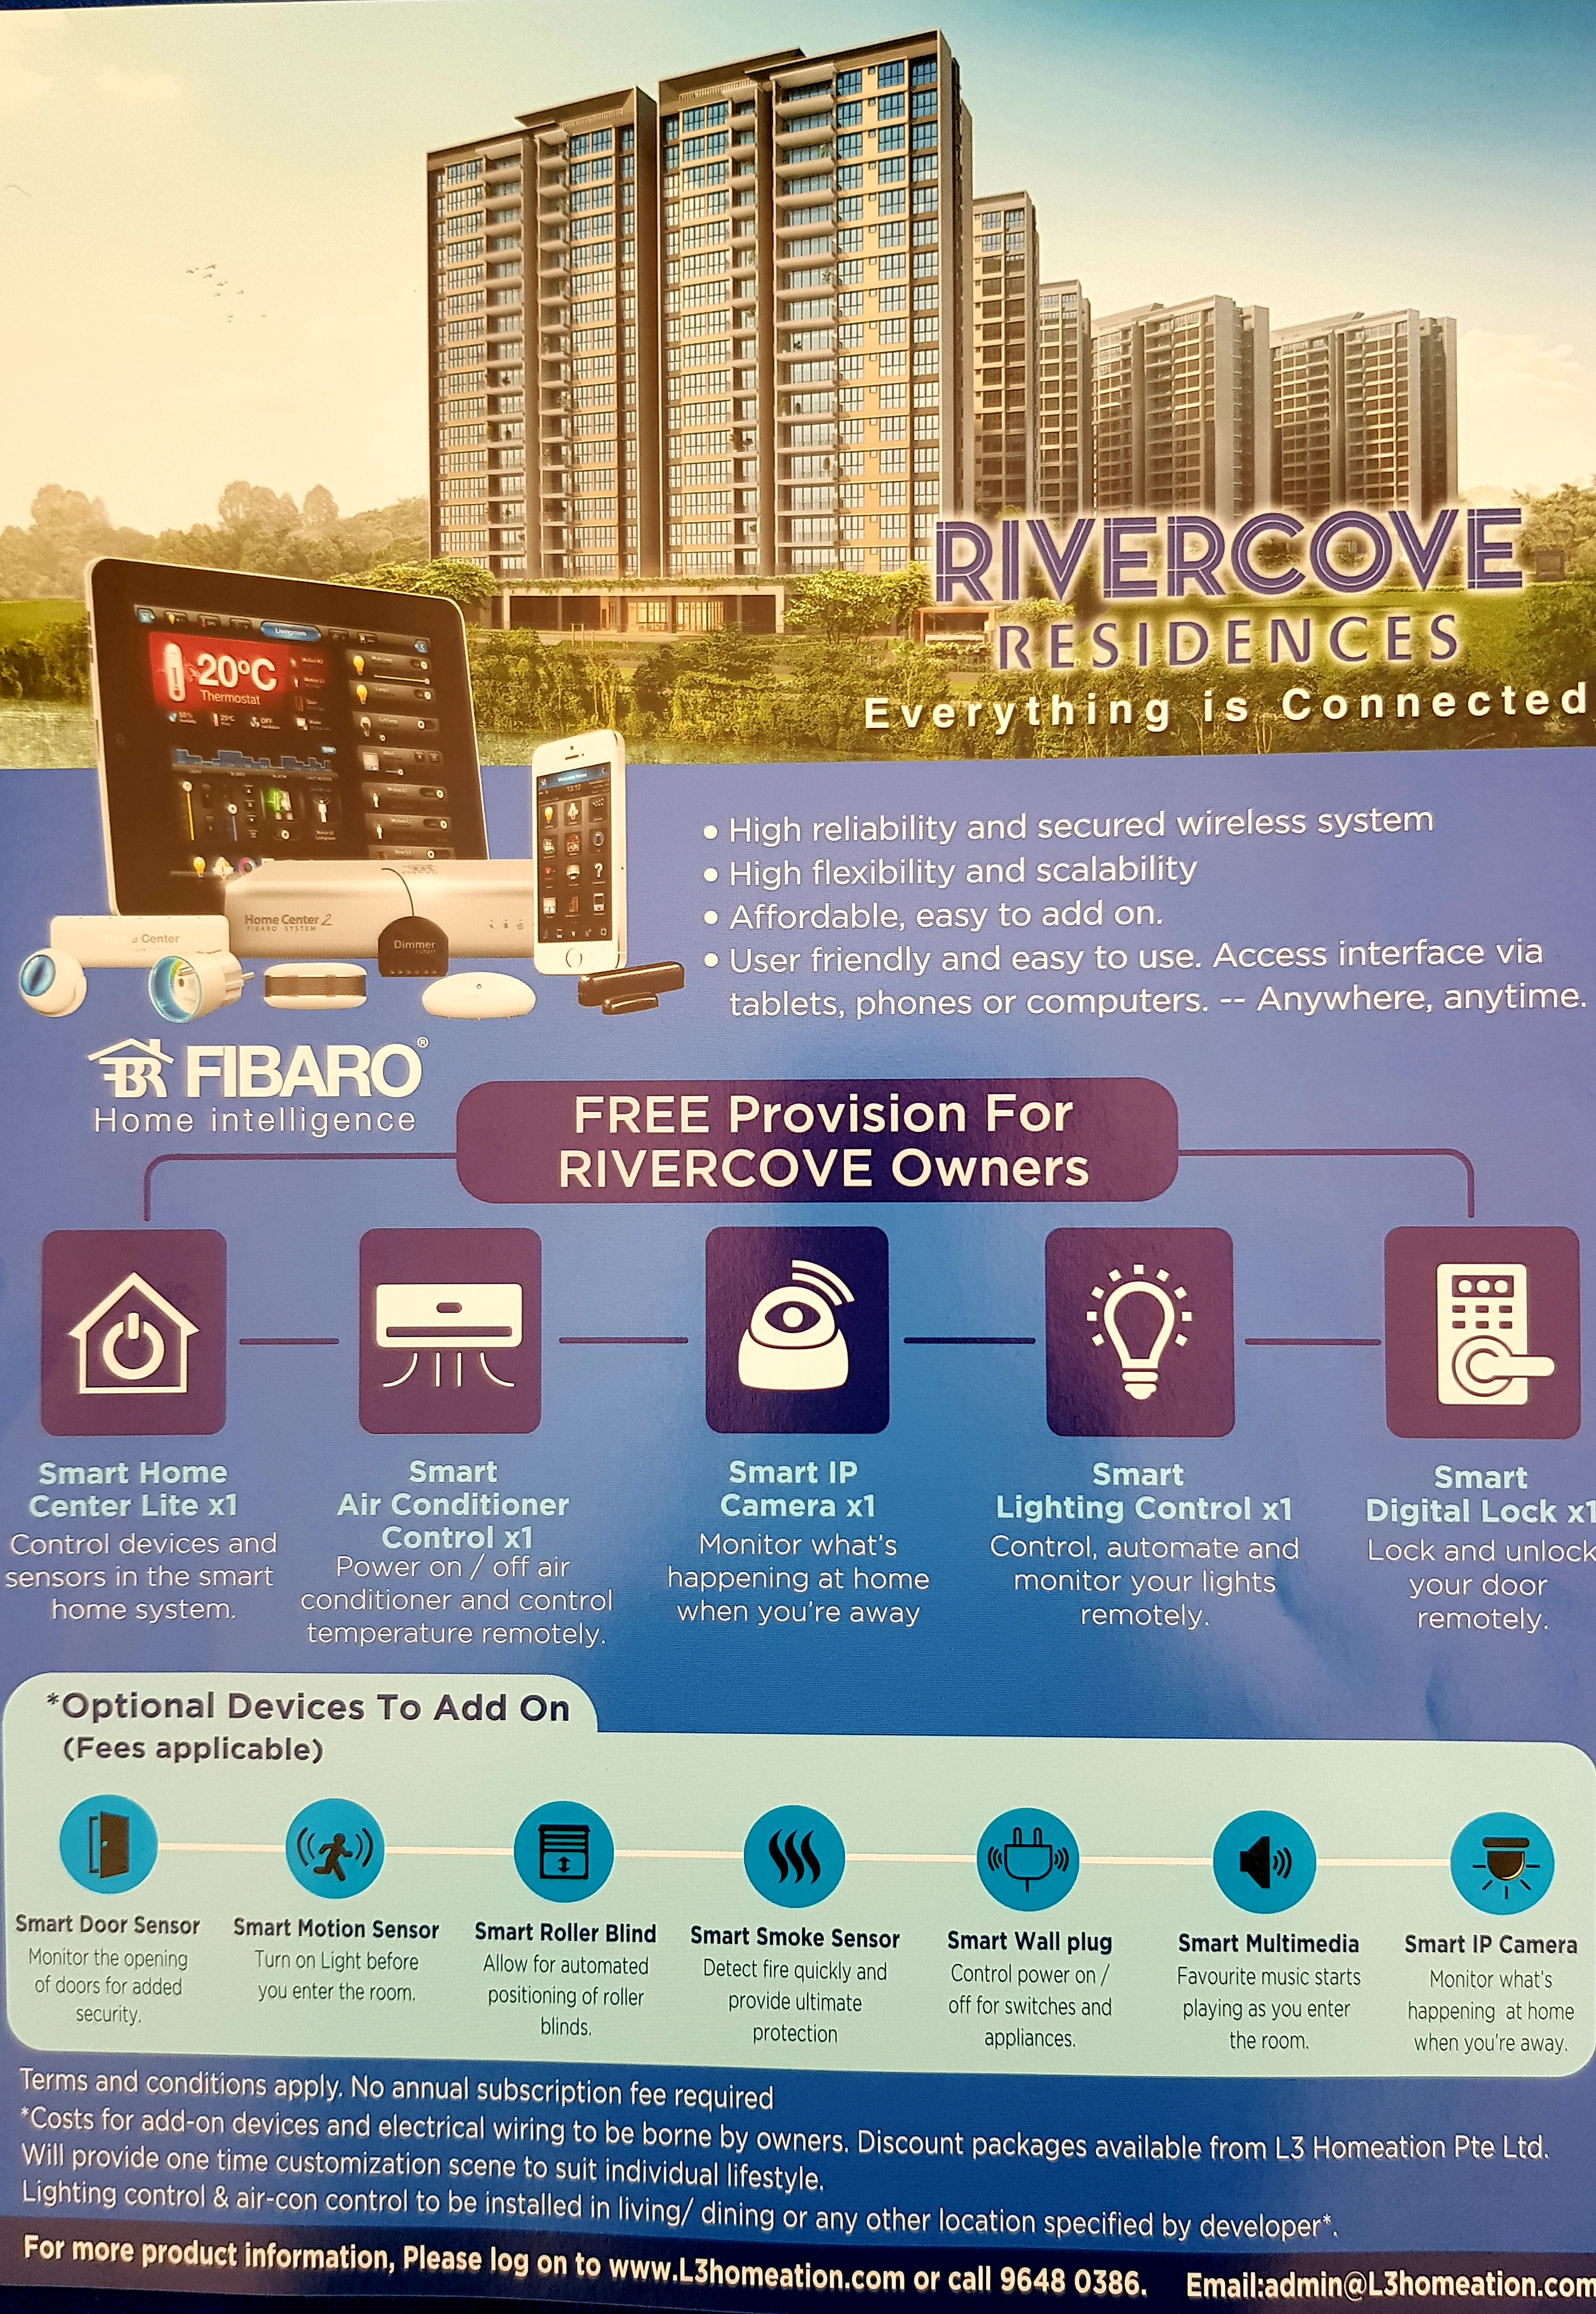 Rivercove EC in Sengkang, Rivercove EC floor plan, New executive condominium (EC) in Sengkang